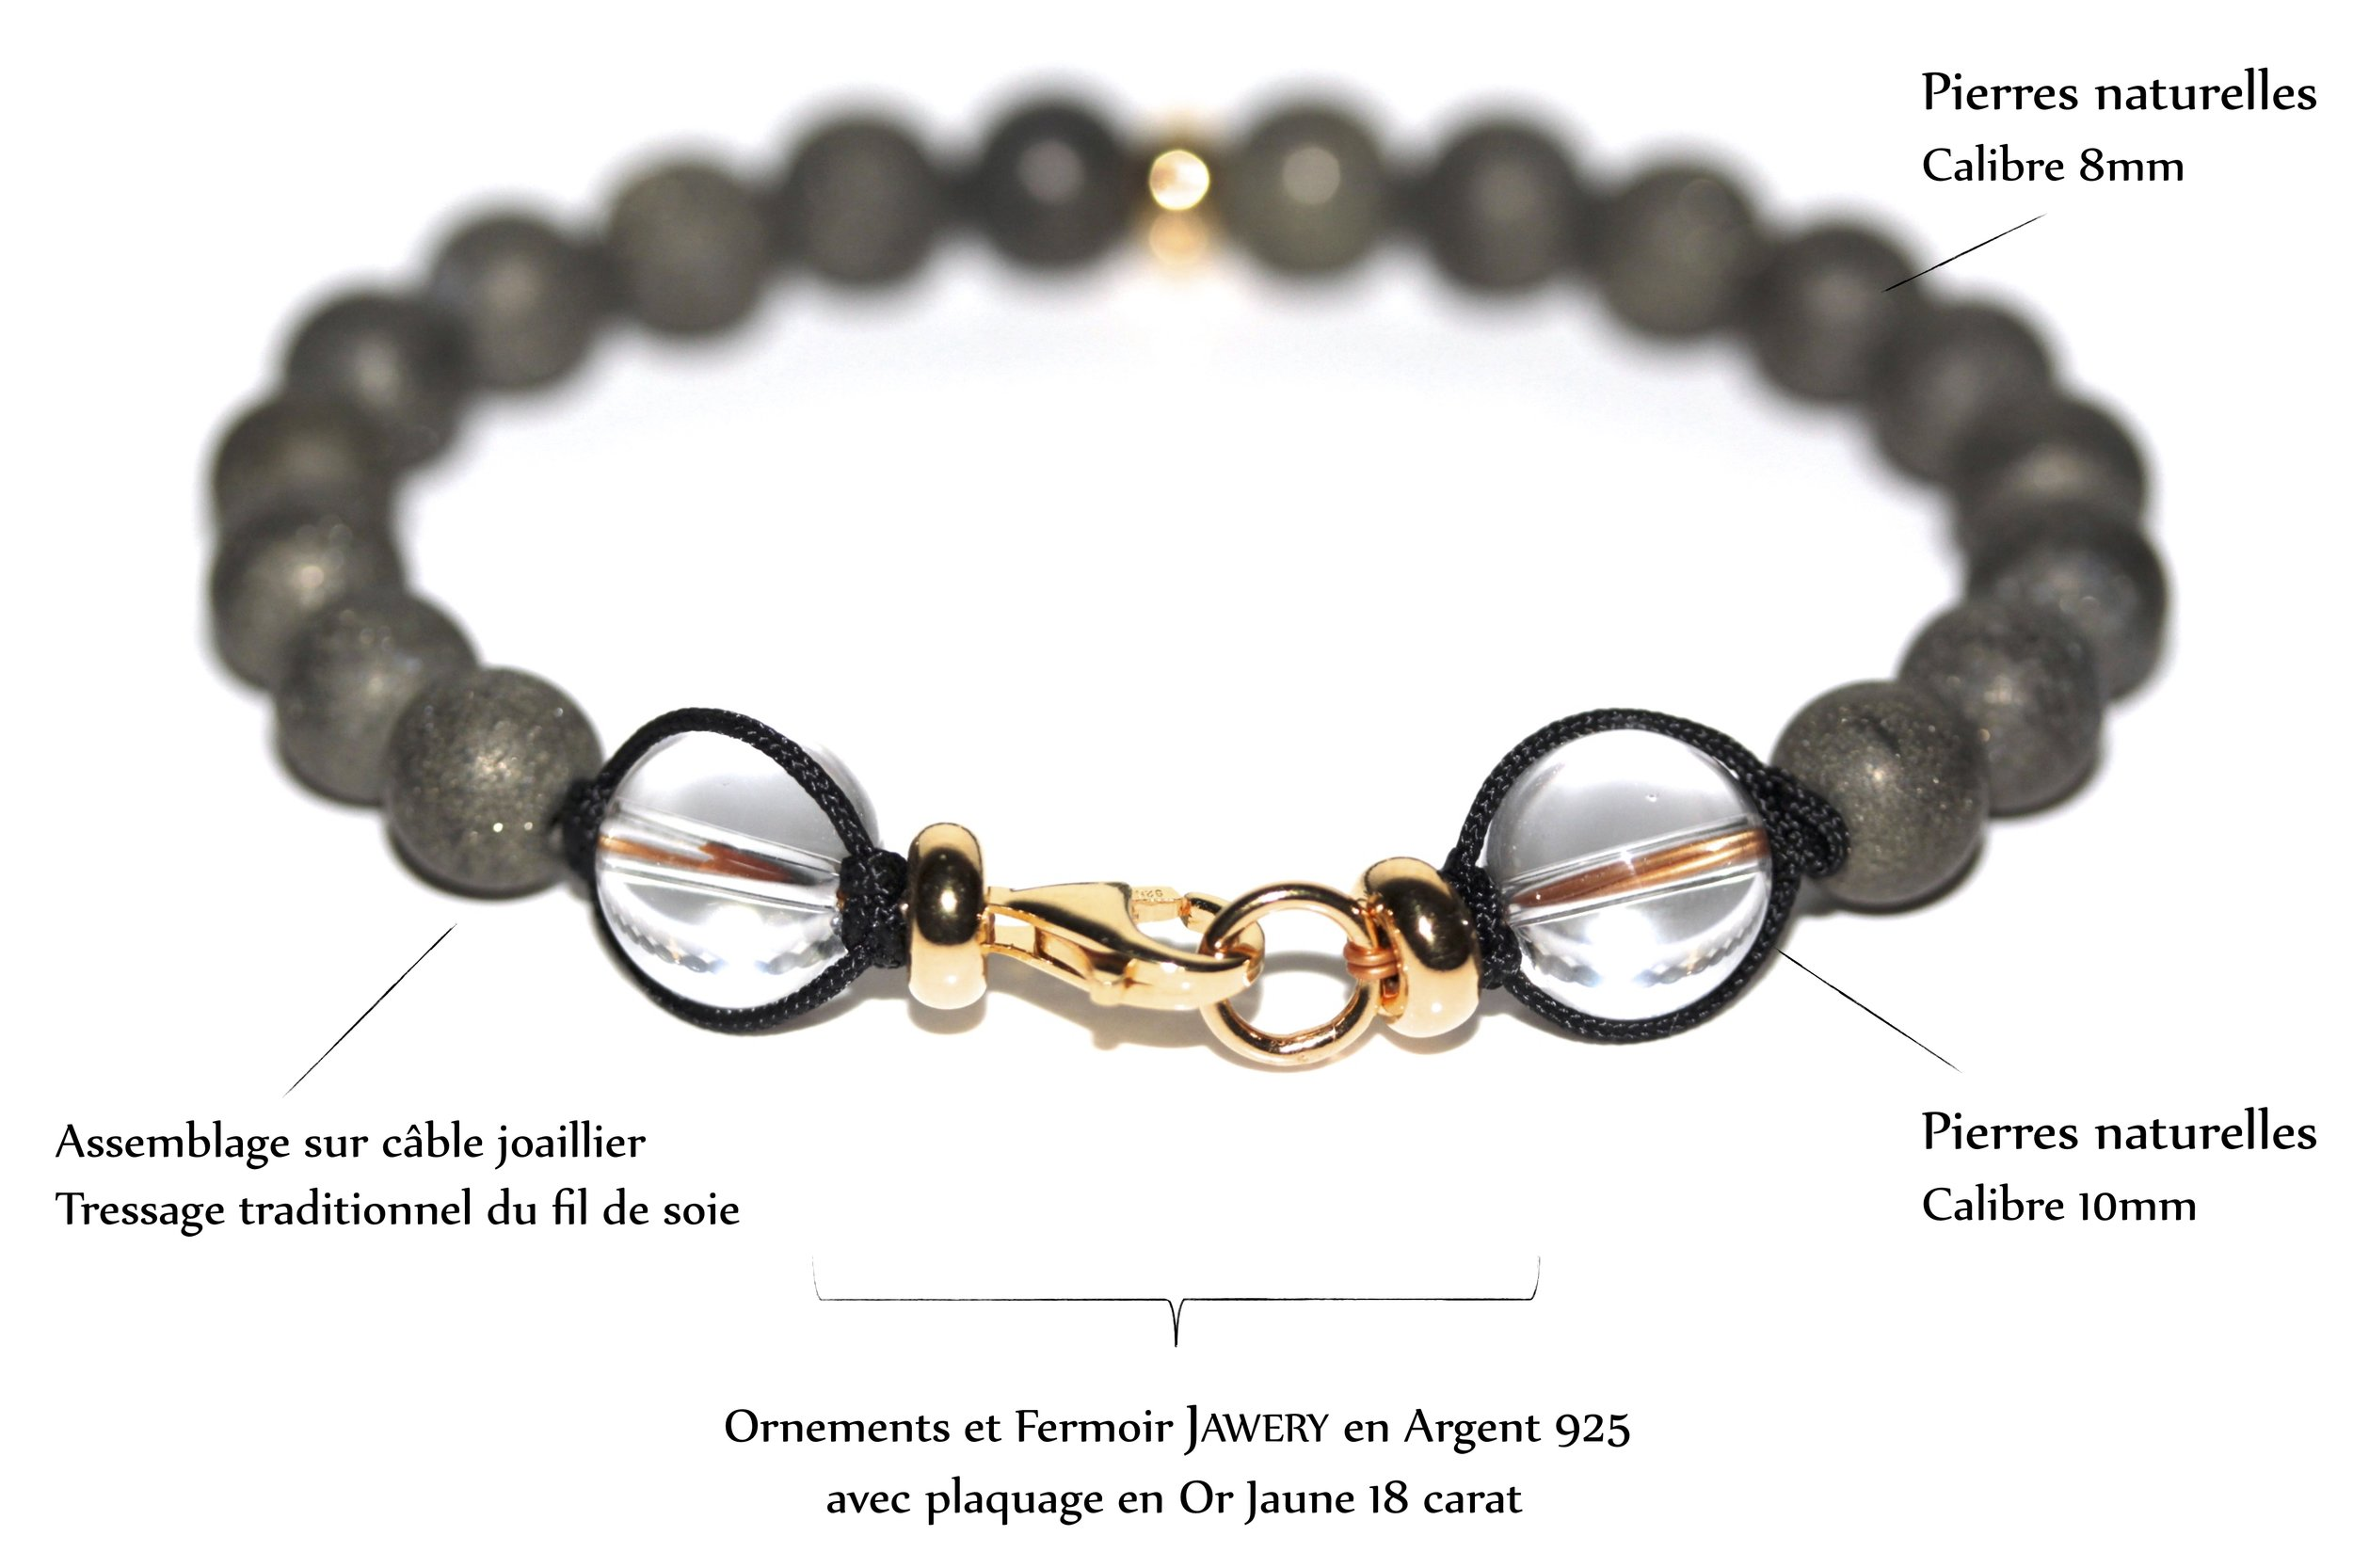 Assemblage exclusif de l'atelier JAWERY